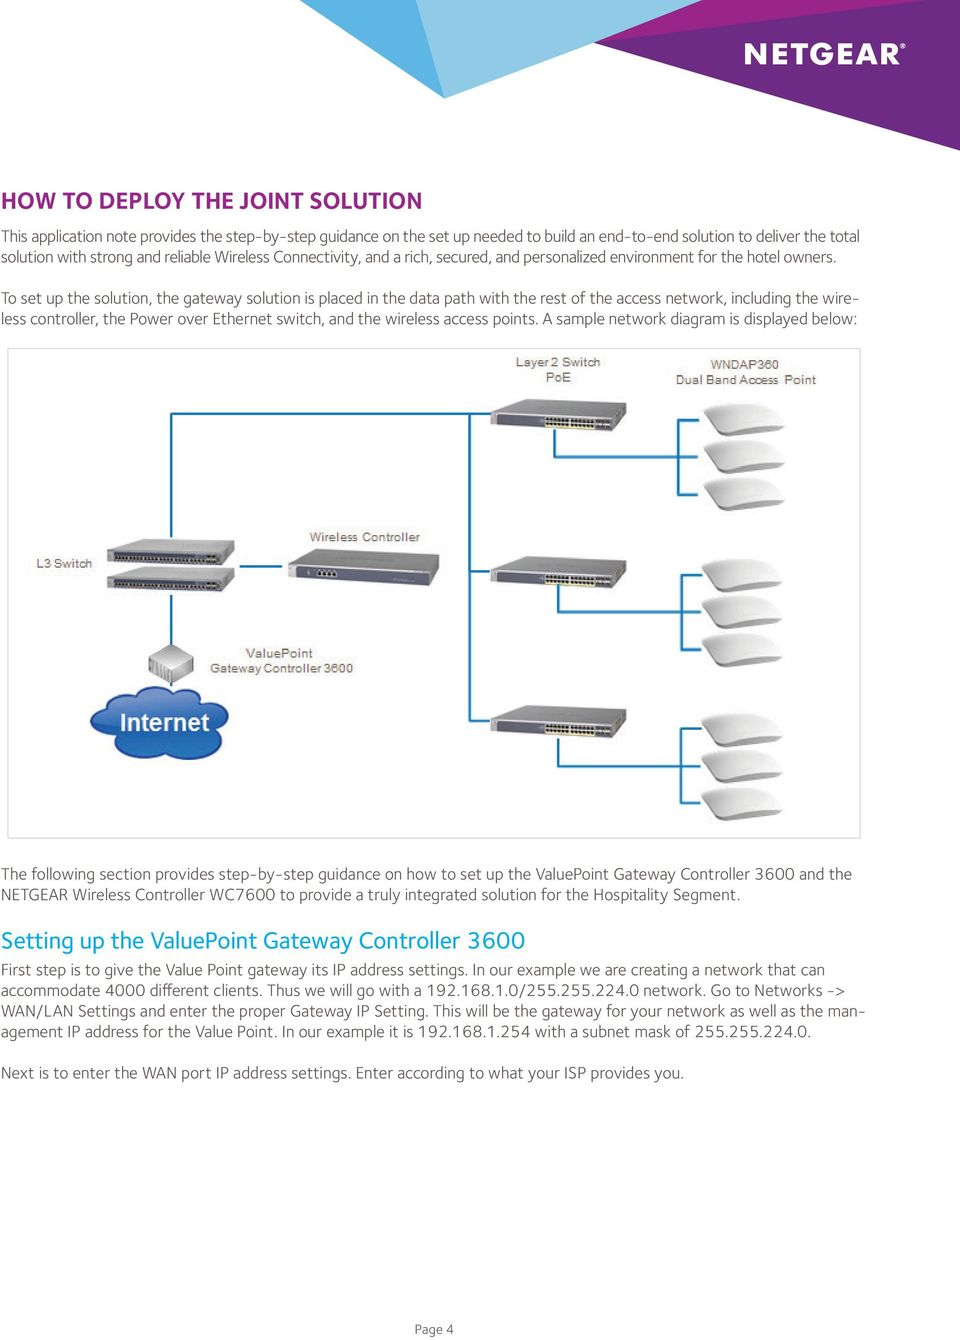 To set up the solution, the gateway solution is placed in the data path with the rest of the access network, including the wireless controller, the Power over Ethernet switch, and the wireless access